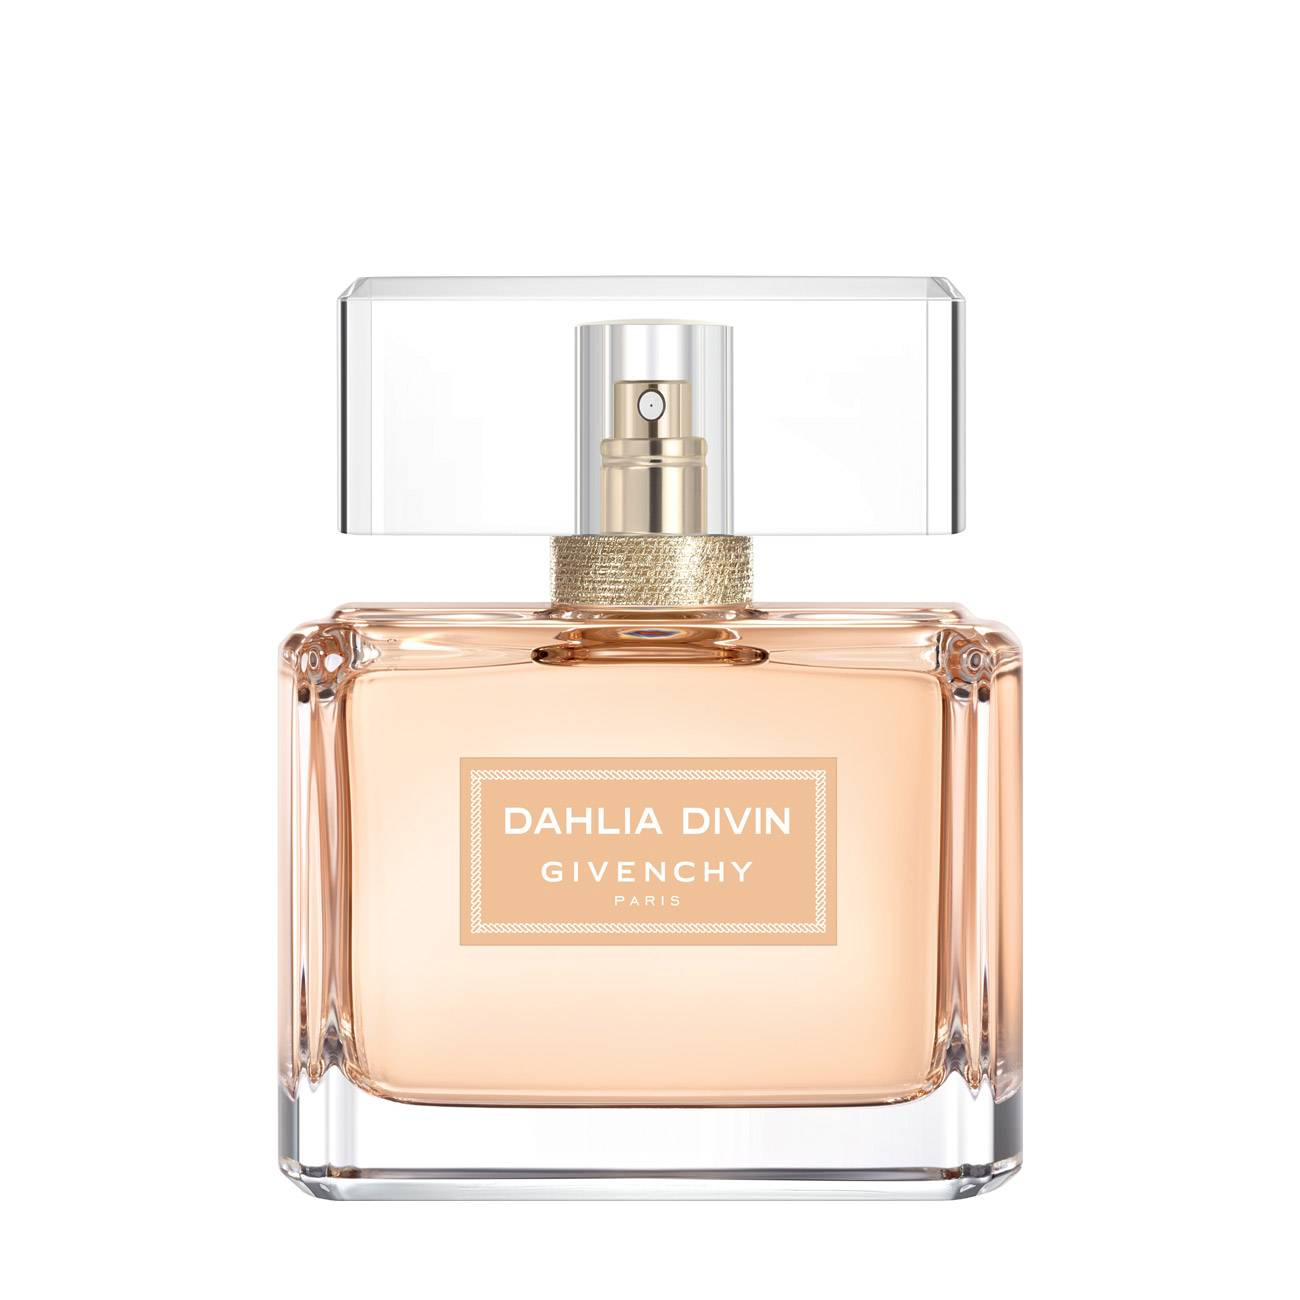 Dahlia Divin Nude 75ml imagine